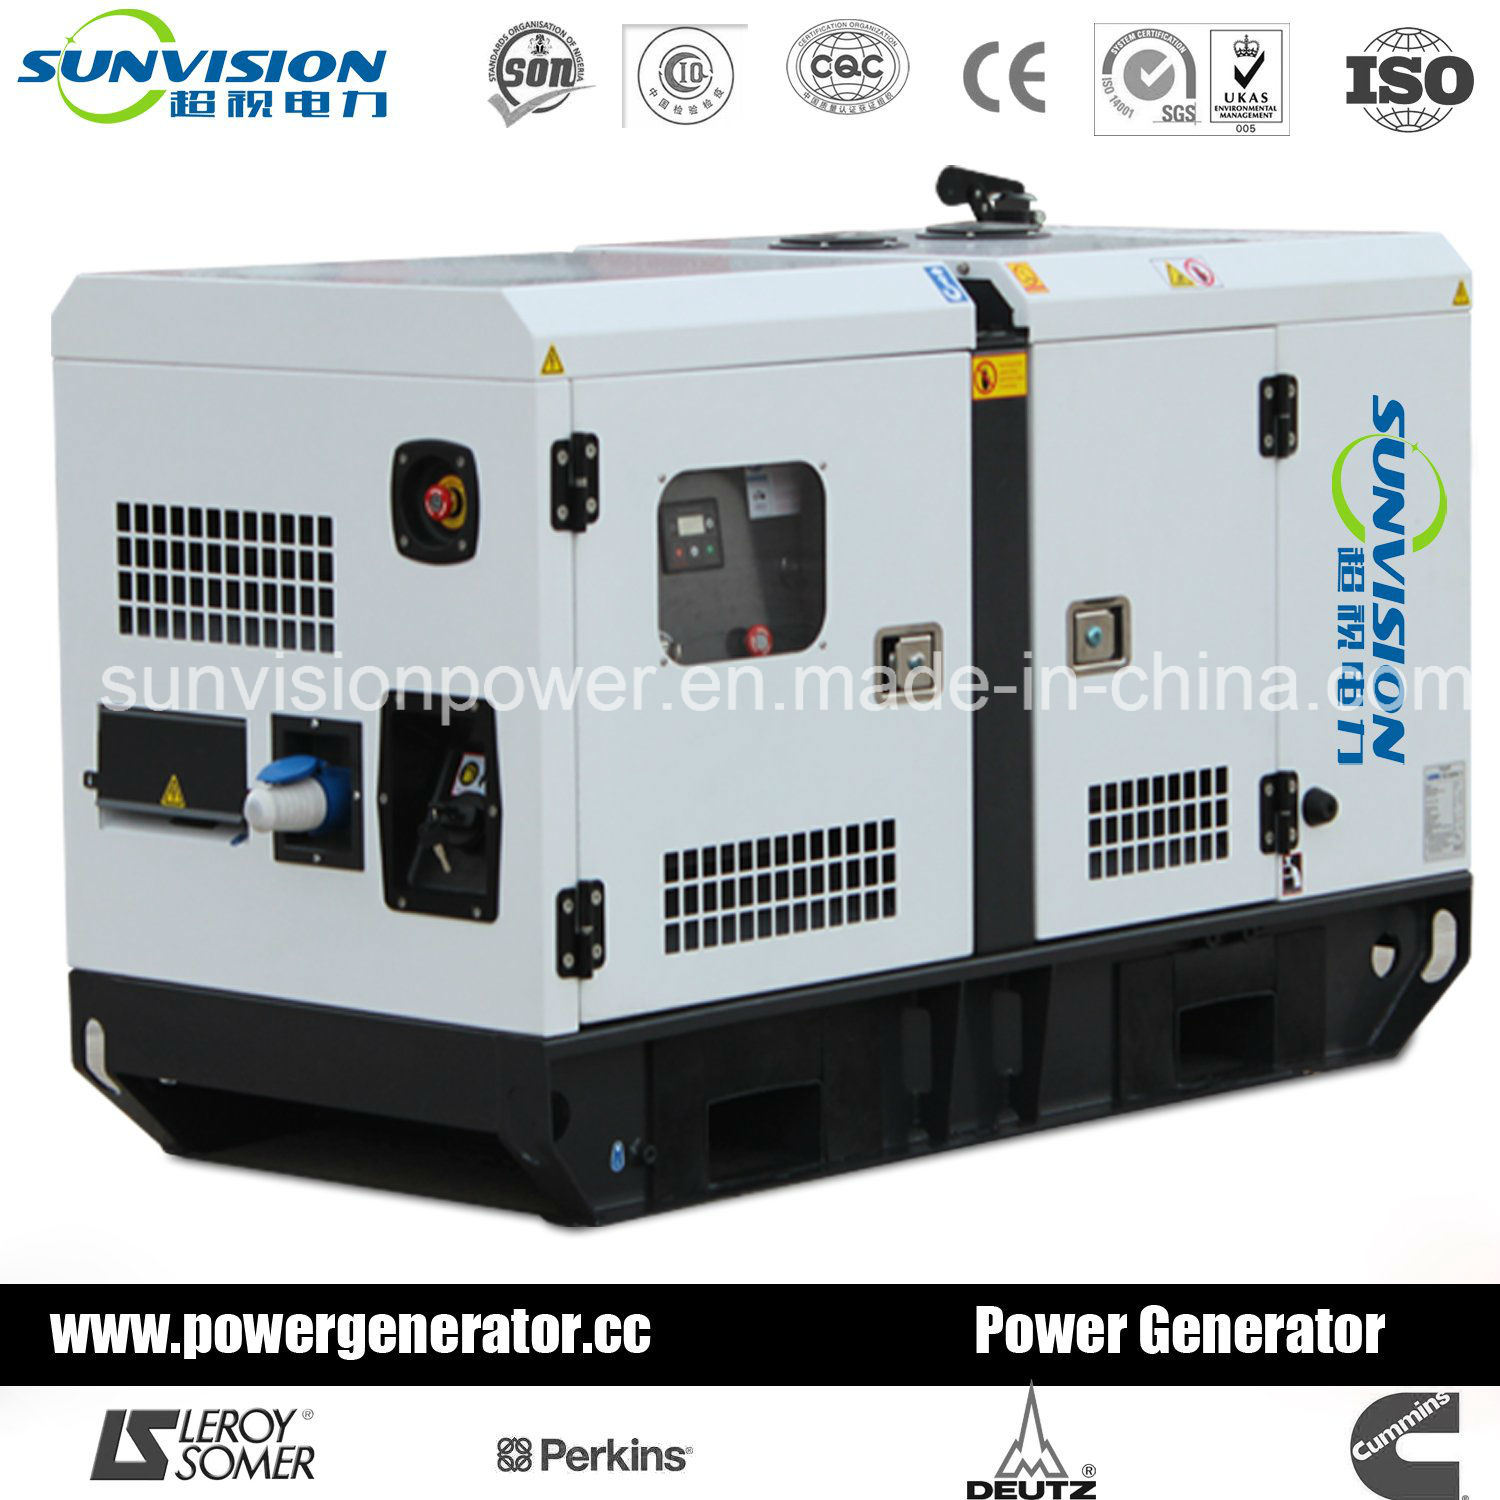 60Hz Generator Set with Perkins Engin From 10kVA 1875kVA